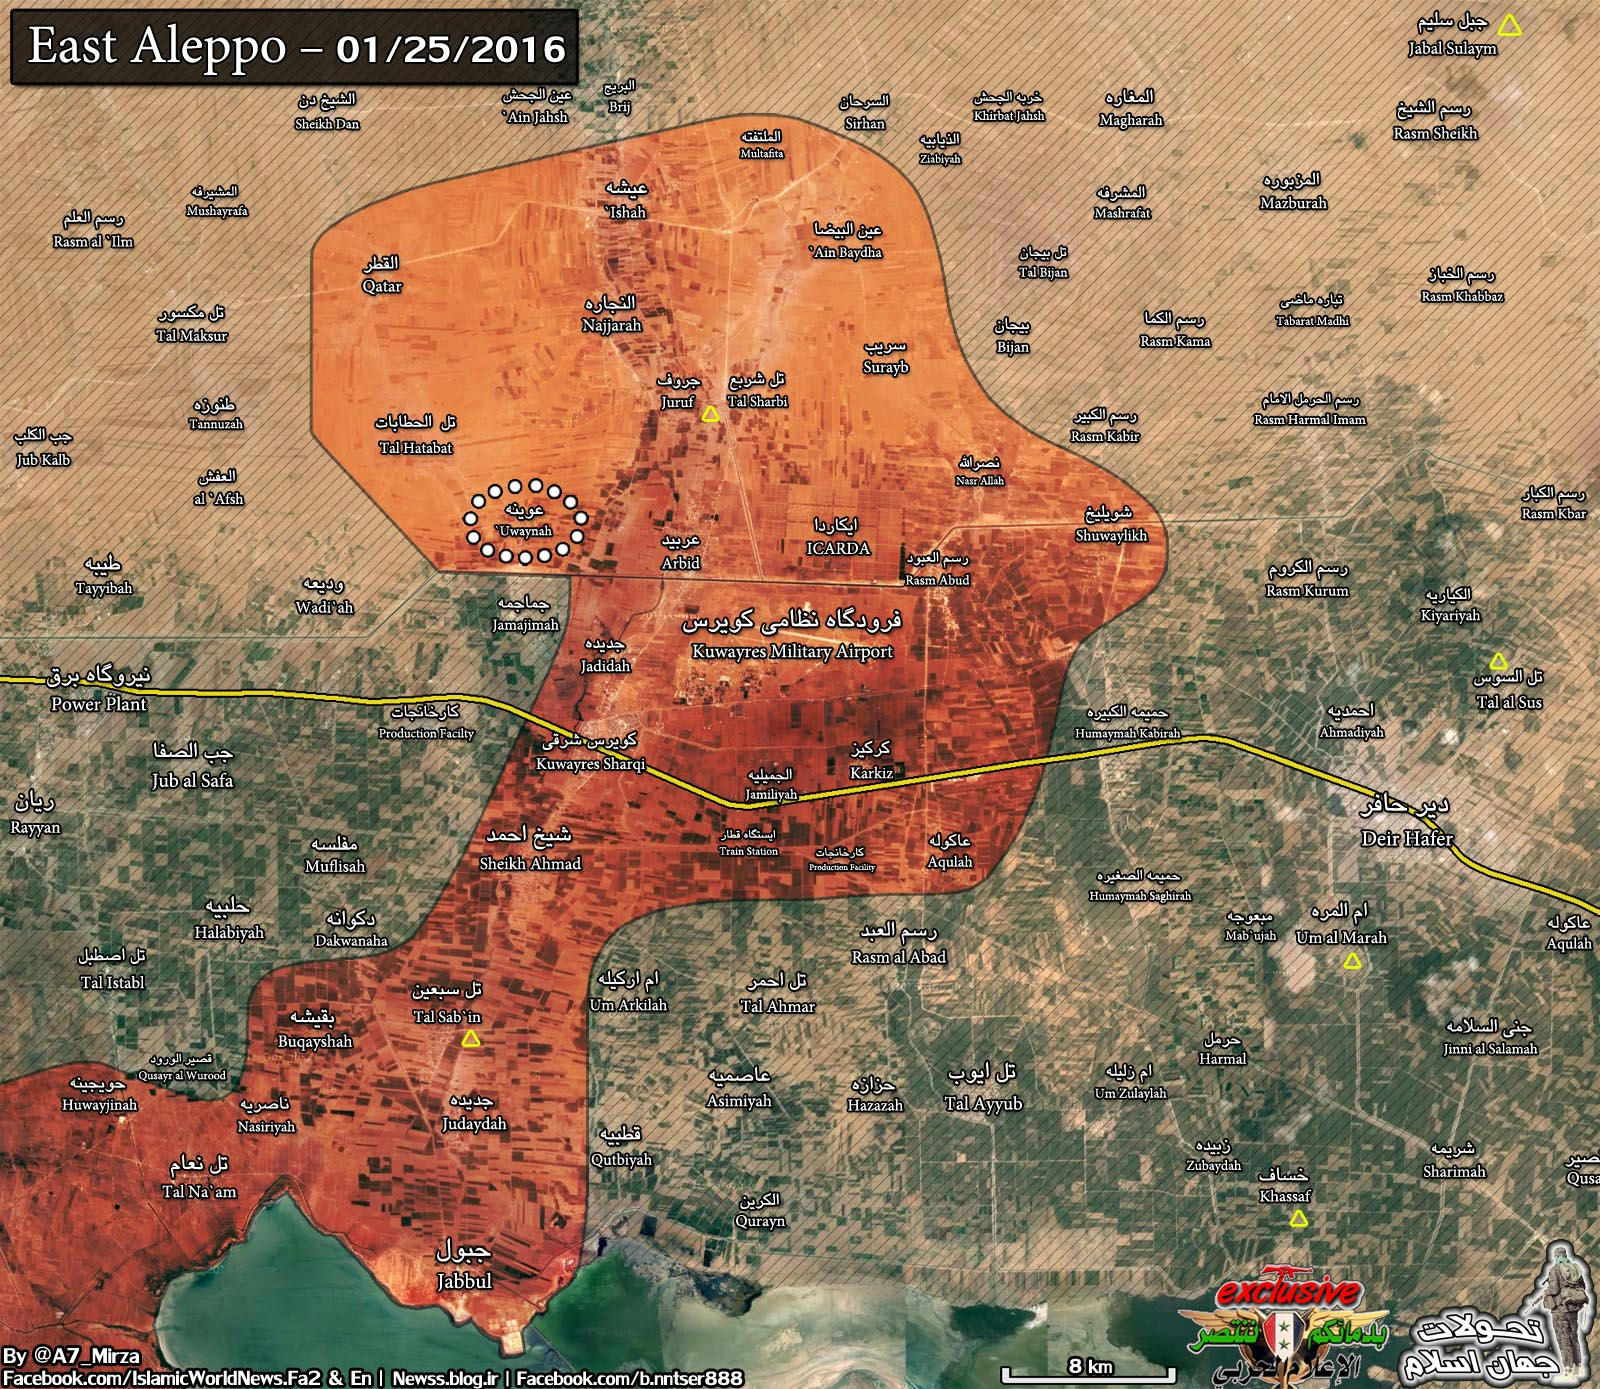 East Aleppo Map Kuwayres Military Airport Syriancivilwar - Aleppo map